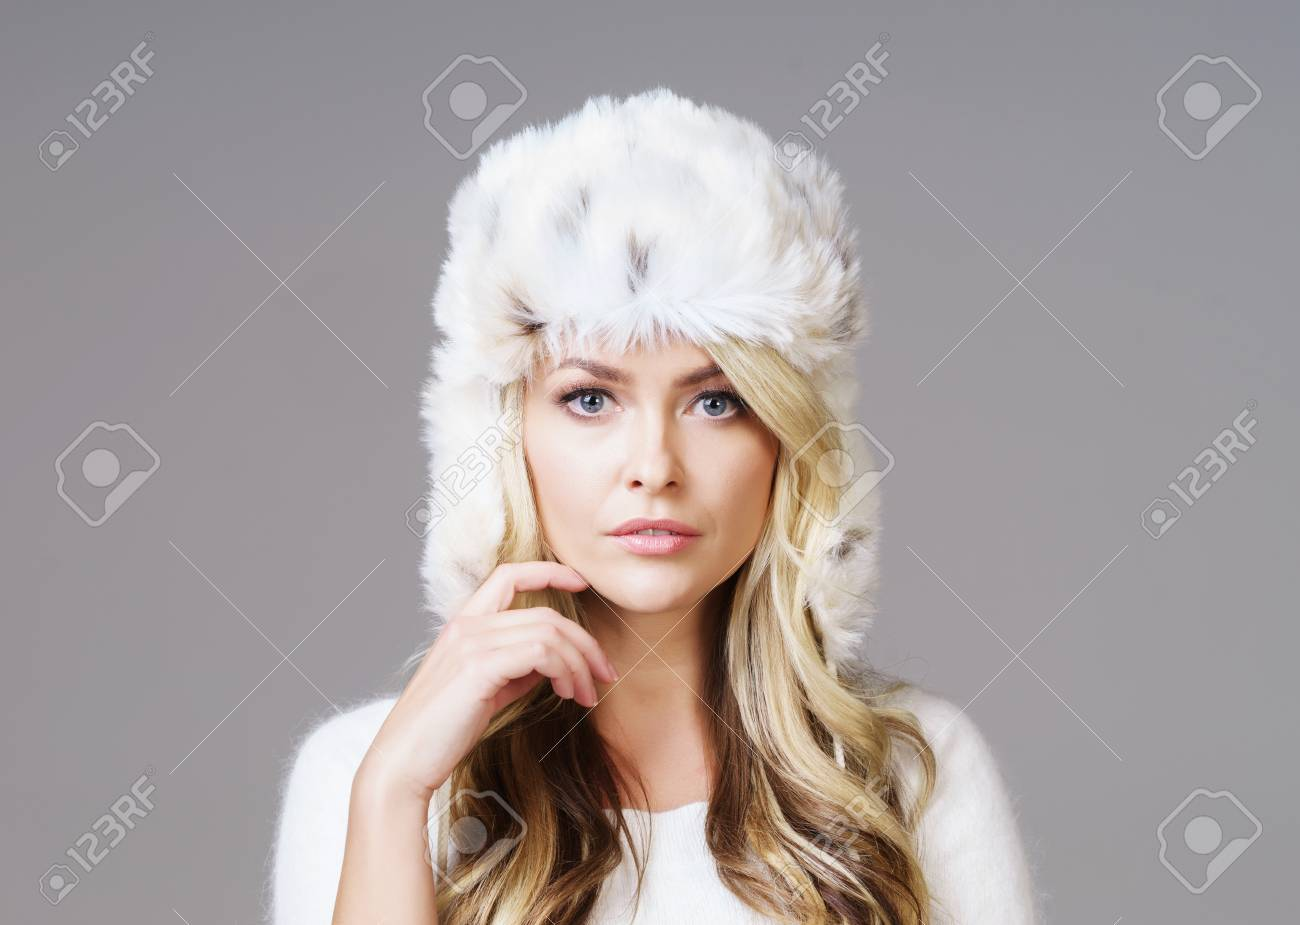 3c32f9a1539f Portrait of young and beautiful woman in winter wear. Grey background.  Christmas, xmas